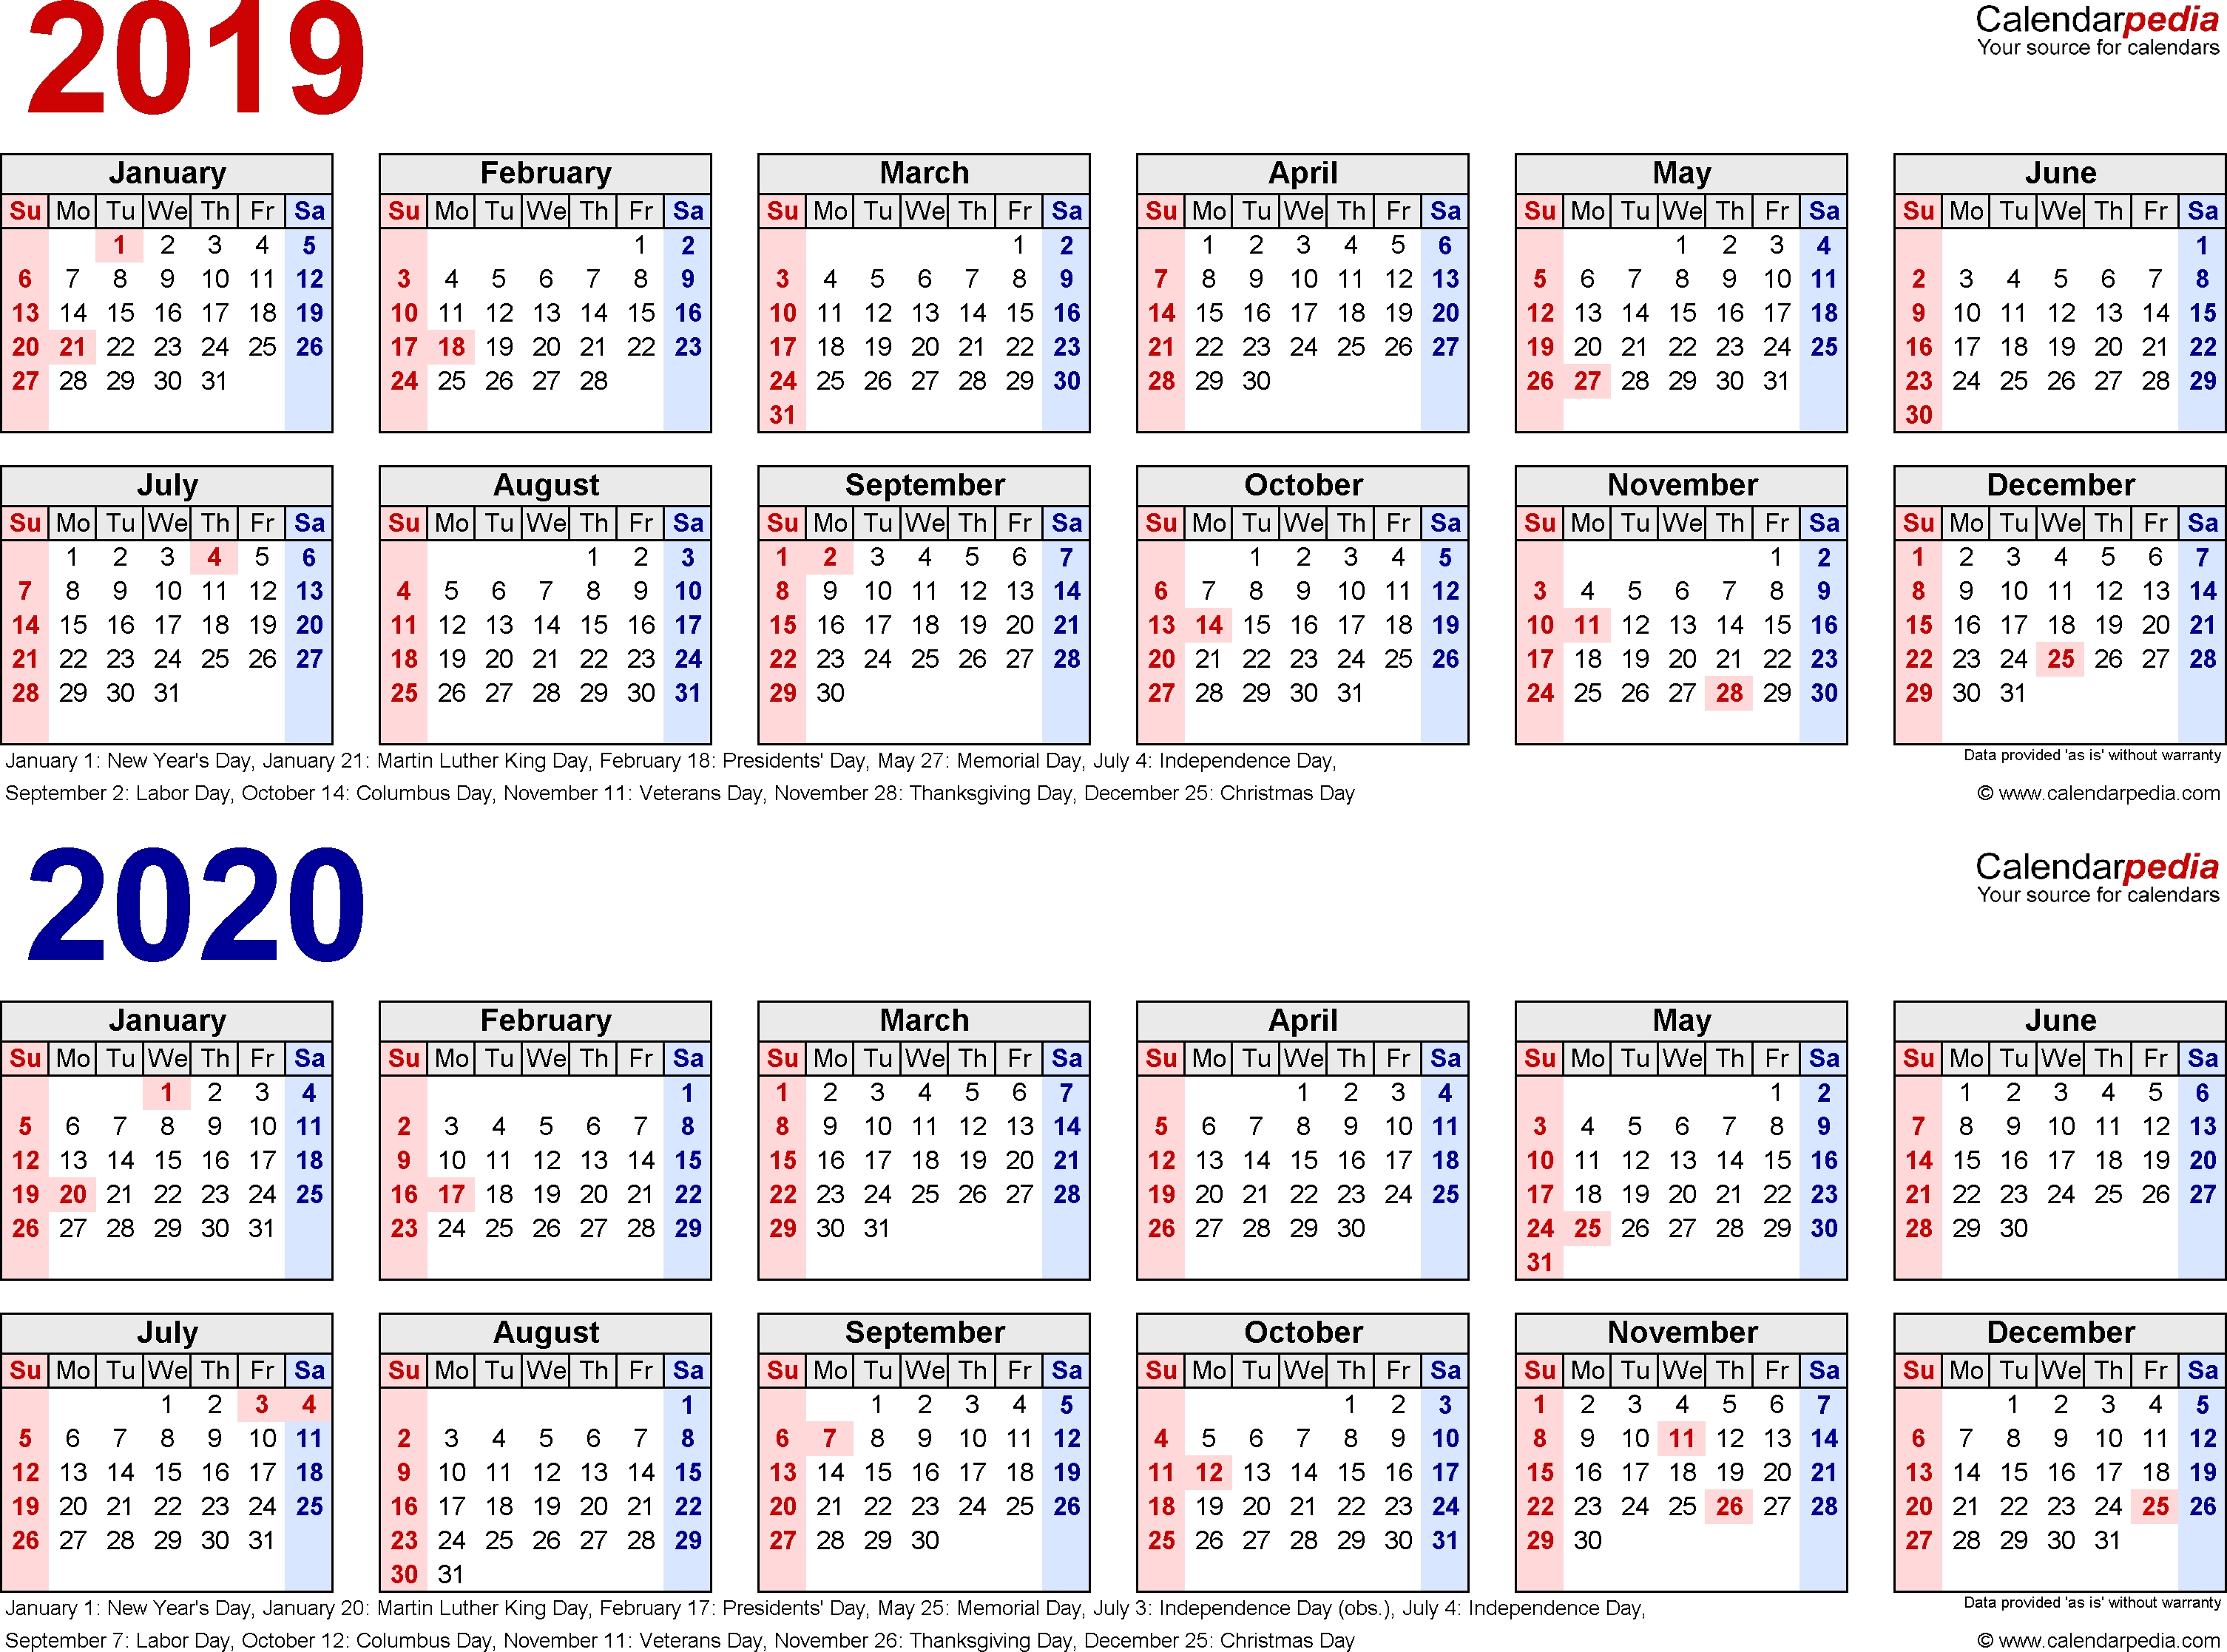 2019-2020 Calendar - Free Printable Two-Year Excel Calendars intended for 2019 And 2020 Google Calendars